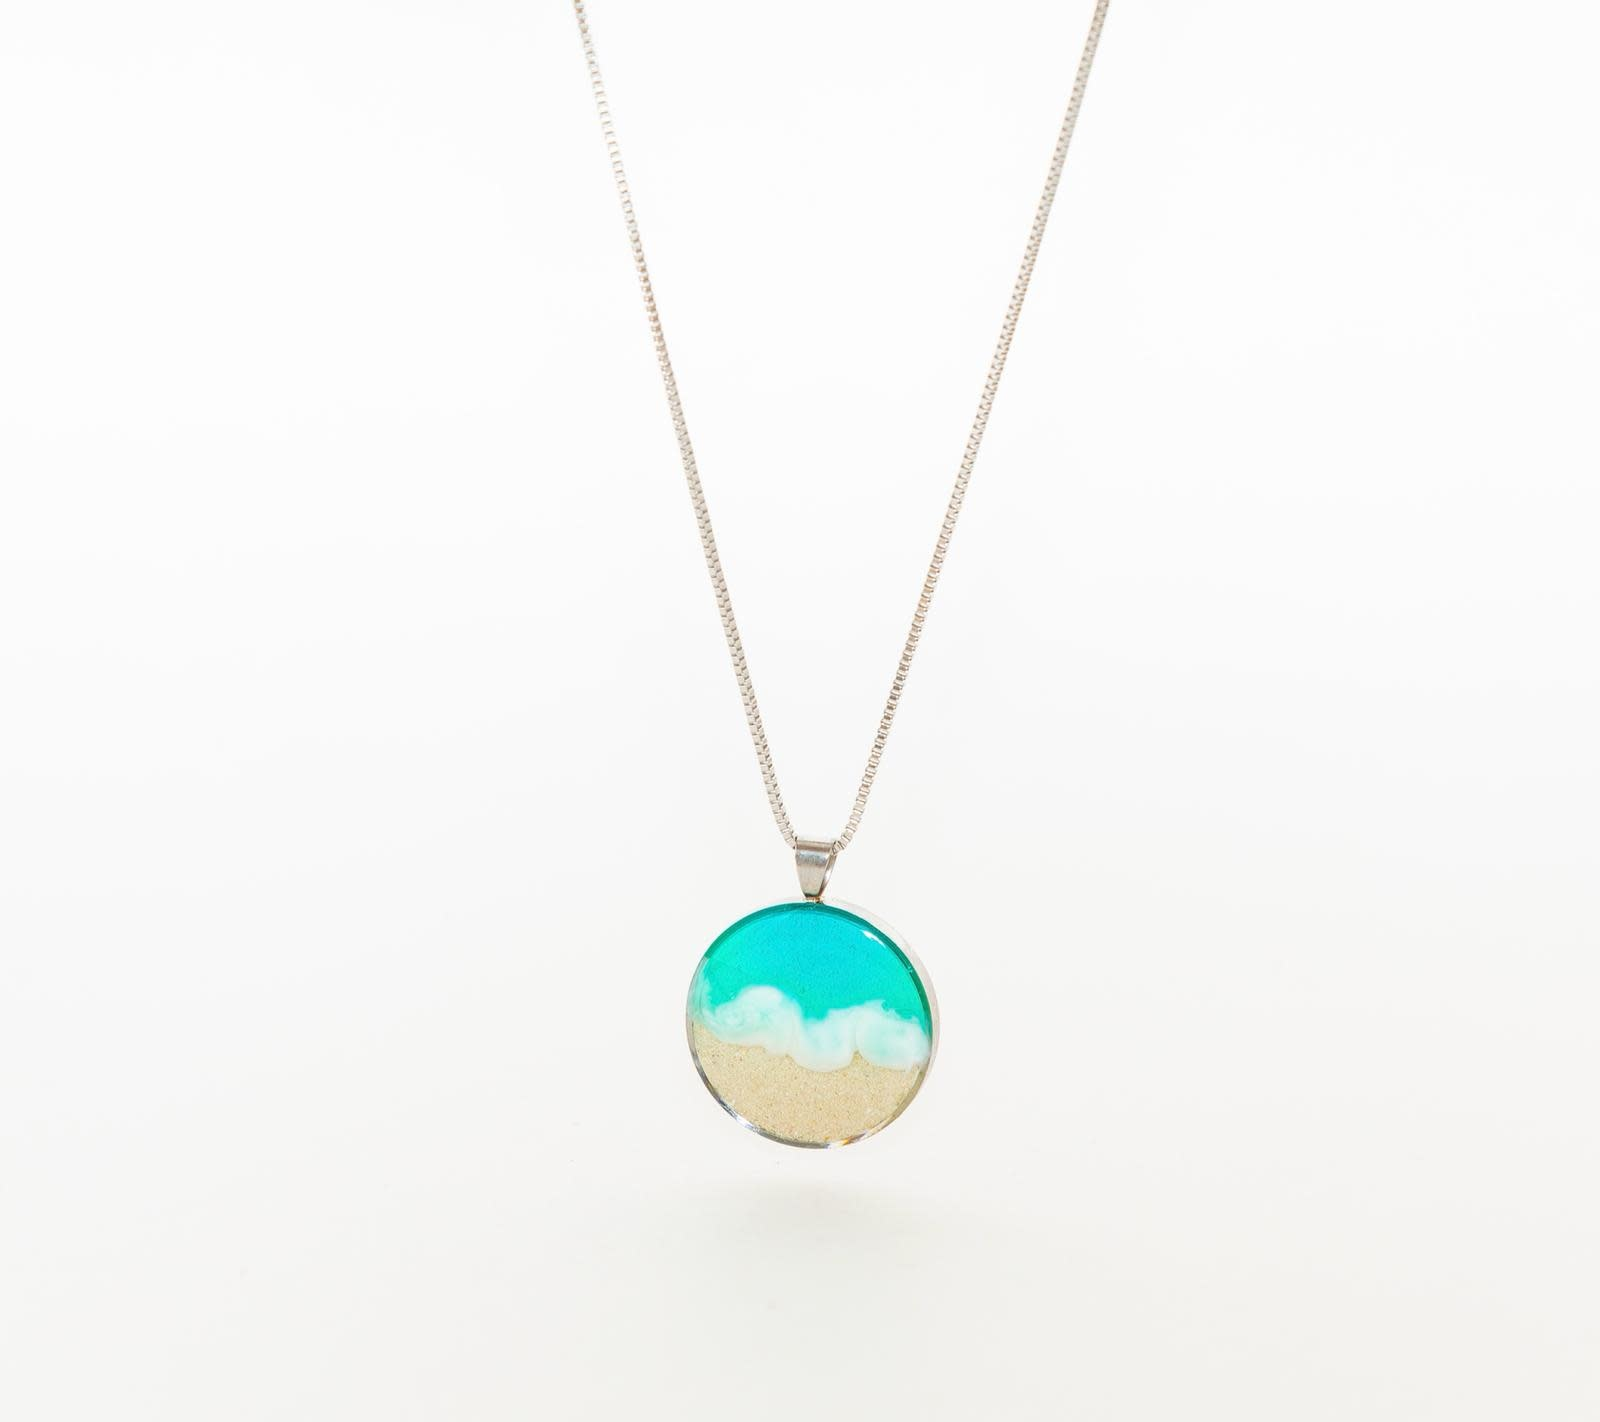 Wellington Michael Wellington Michael Collection Shoreline Circle Necklace